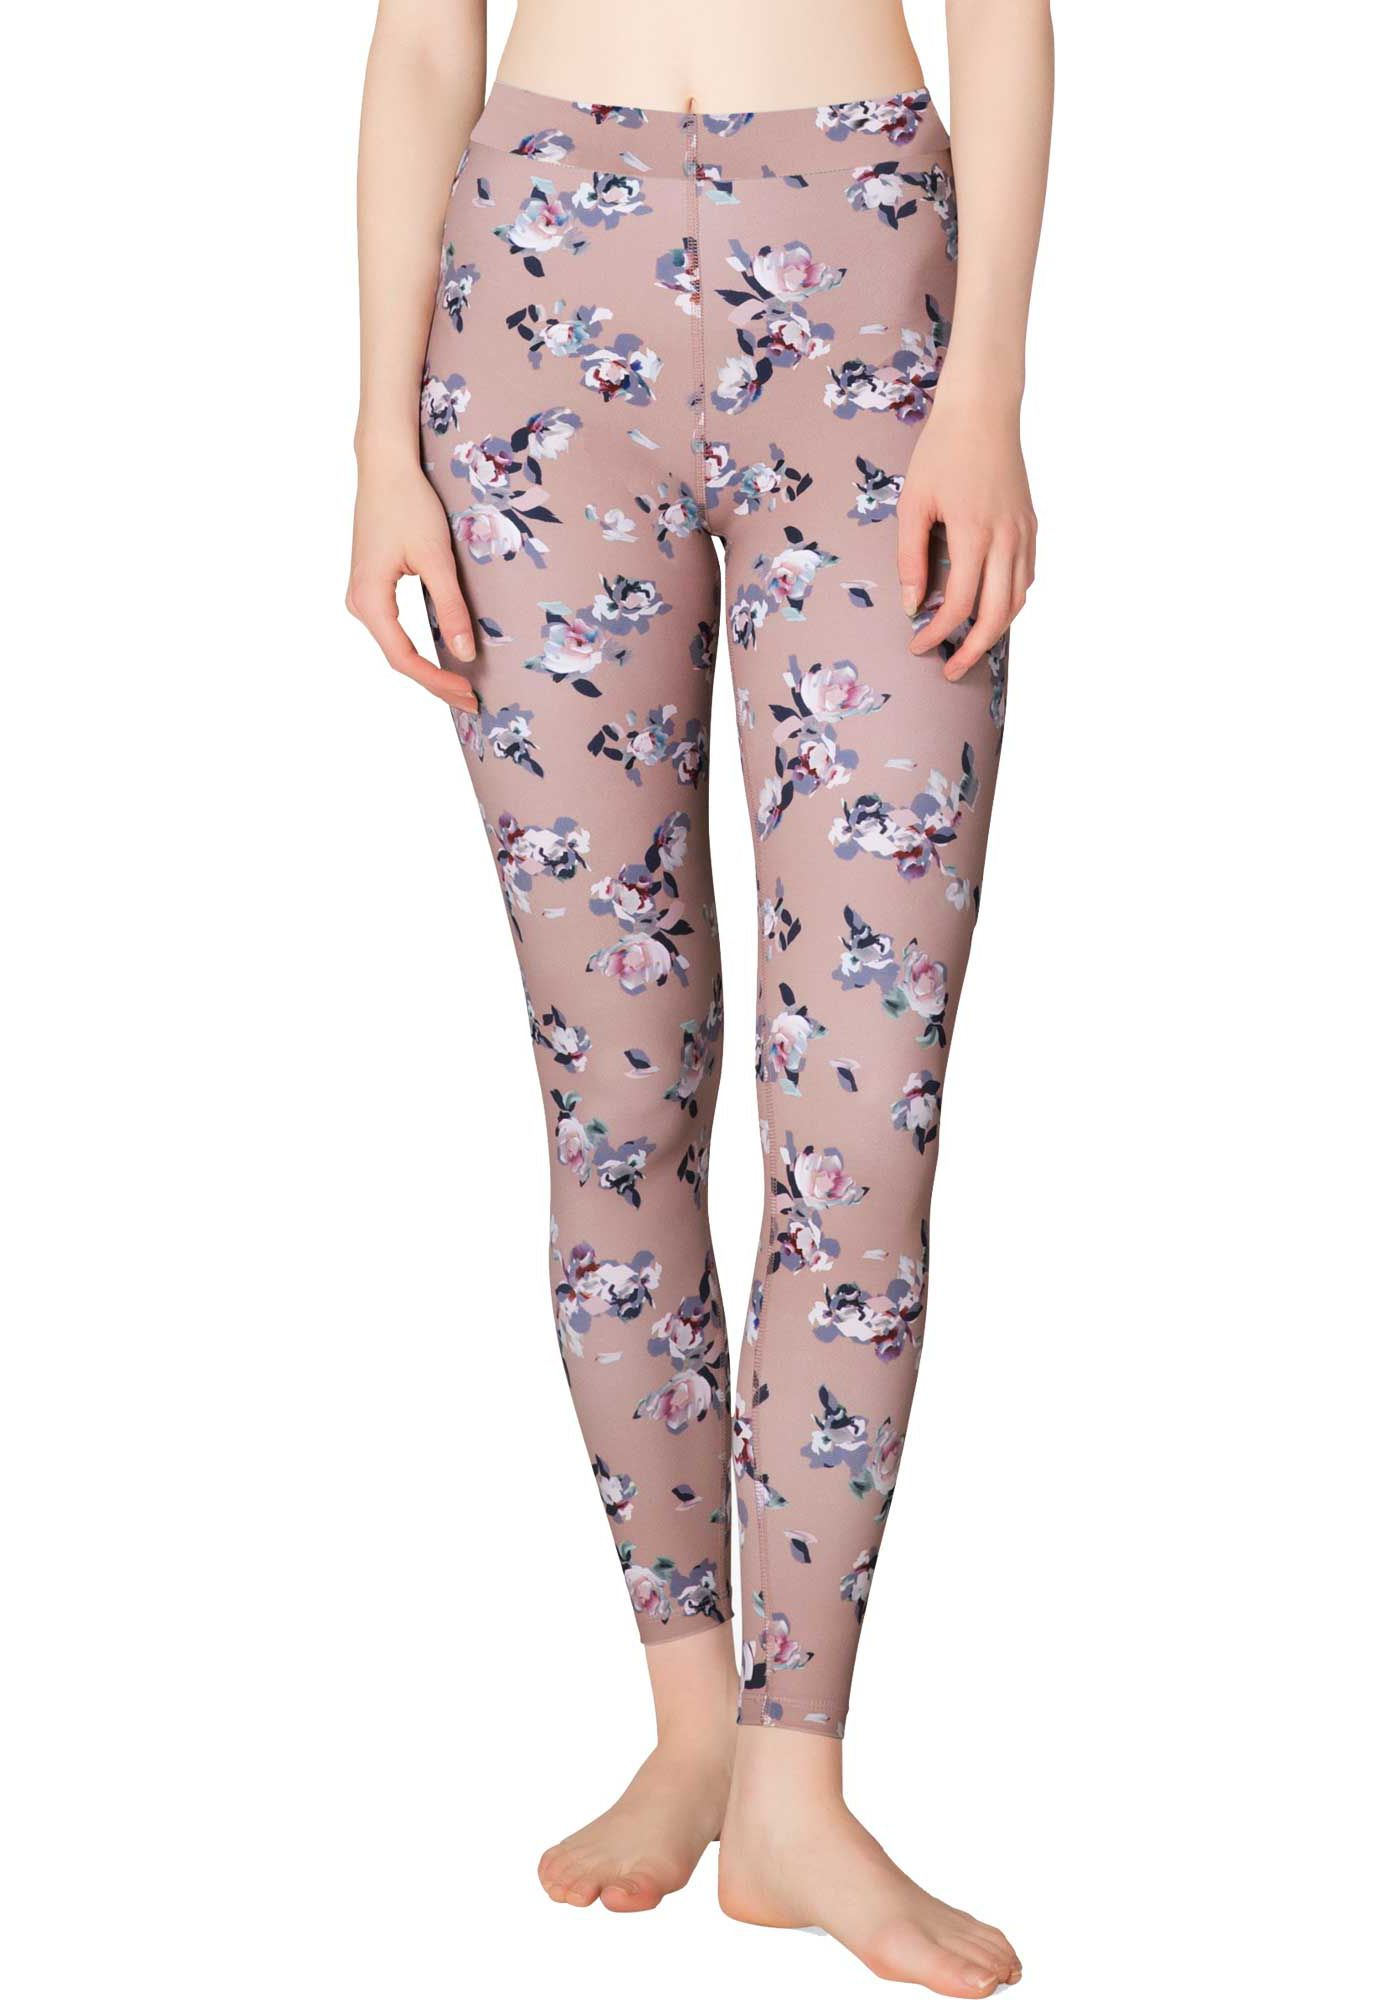 Beyond Yoga Women's High Waist Midi Leggings